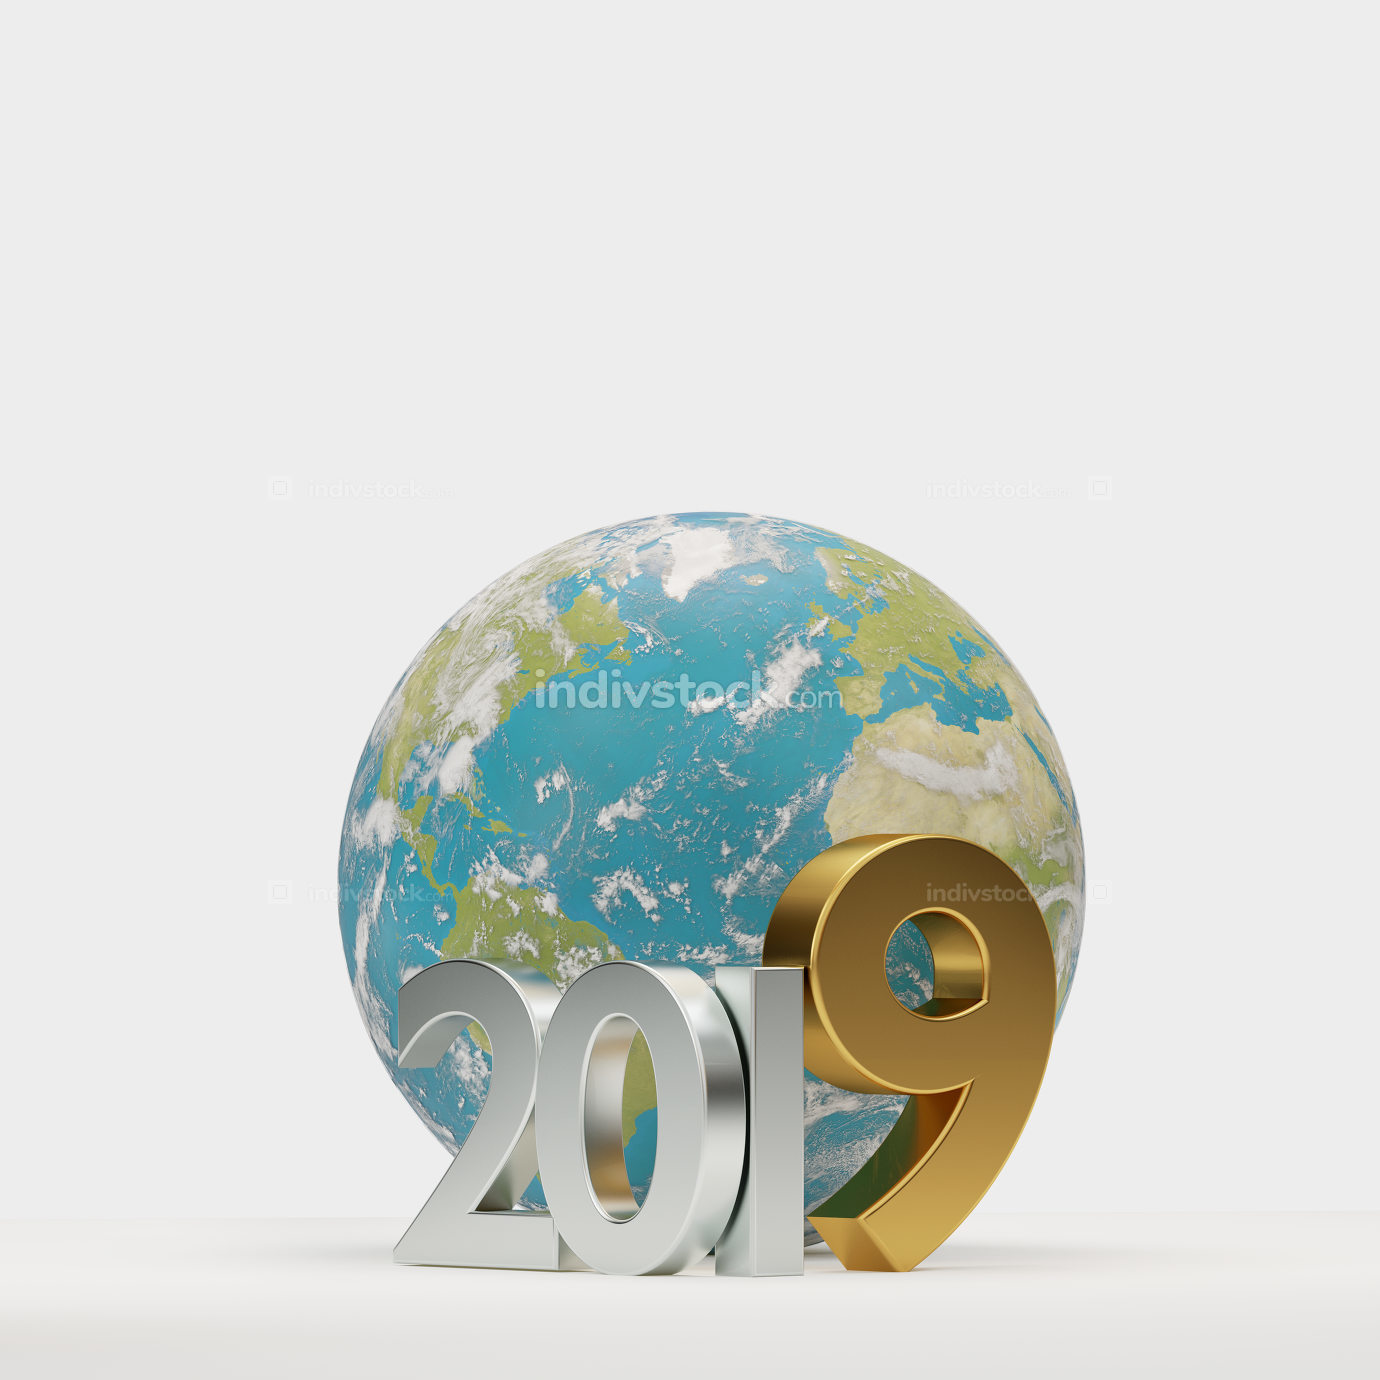 2019 golden symbol world wide planet earth 3d-illustration. elem